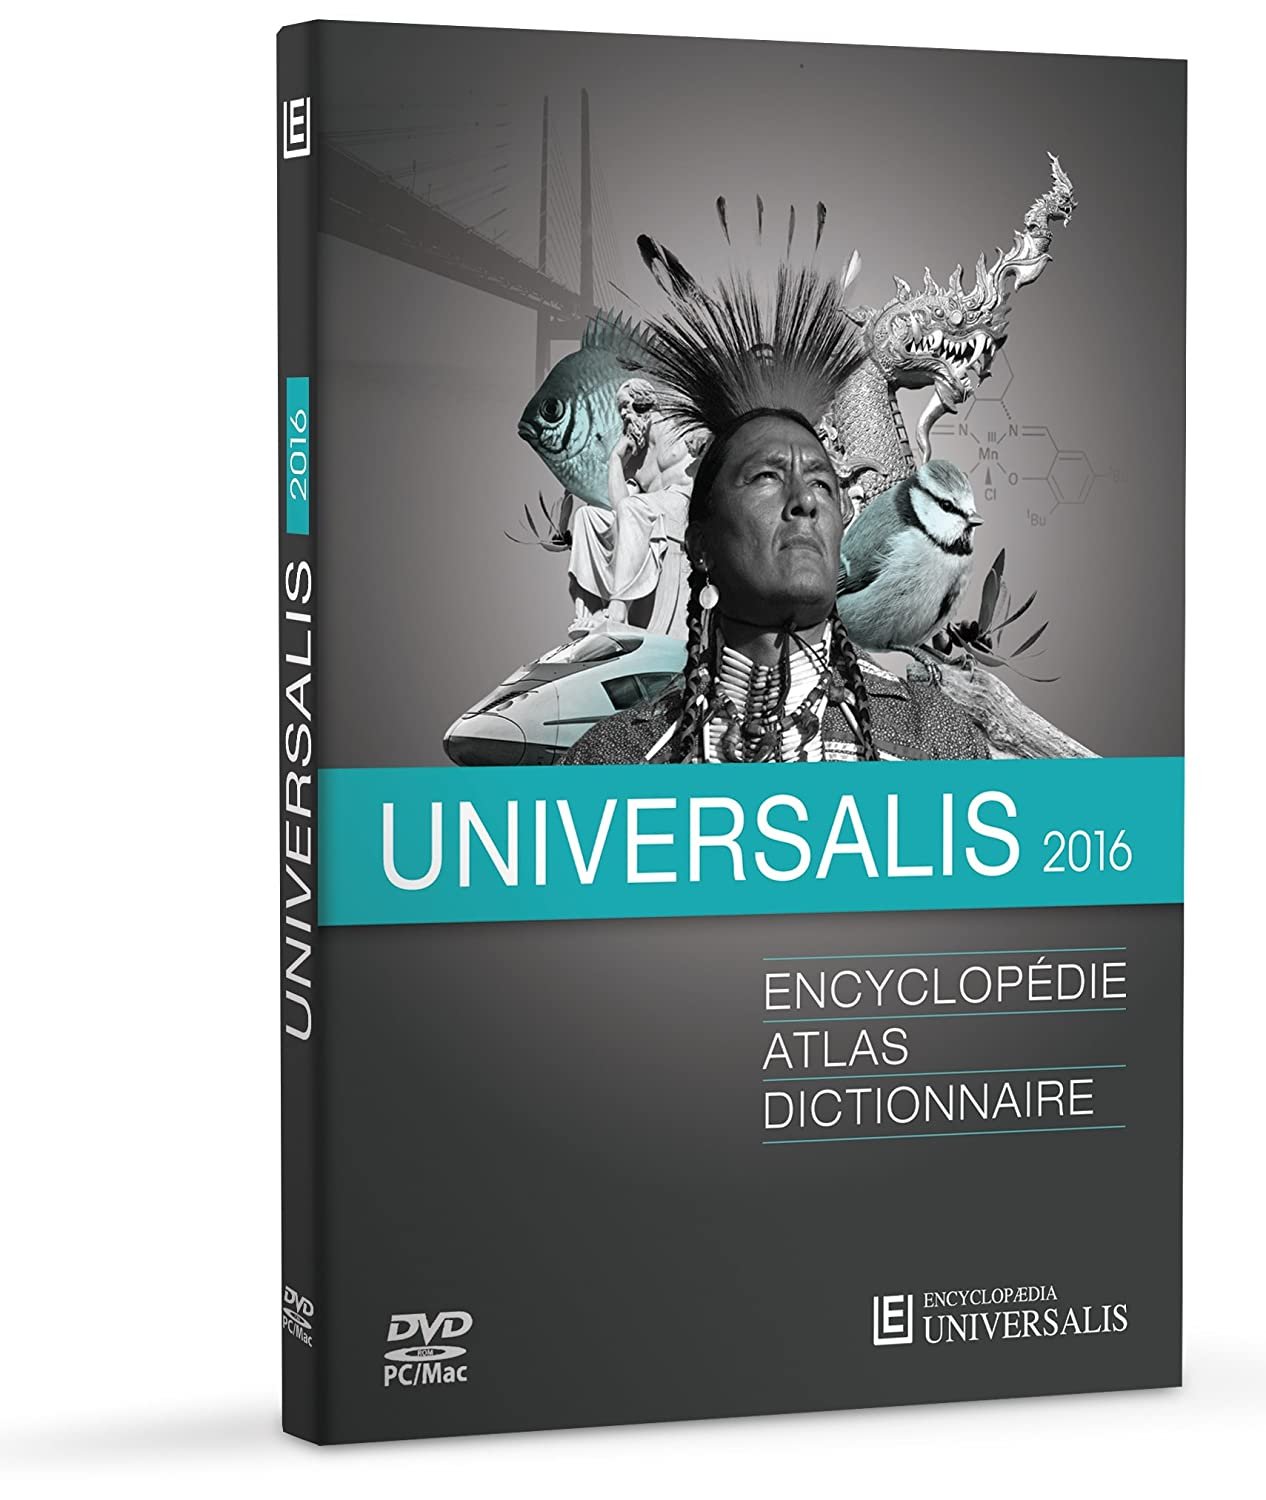 encyclopedie universalis windows 8